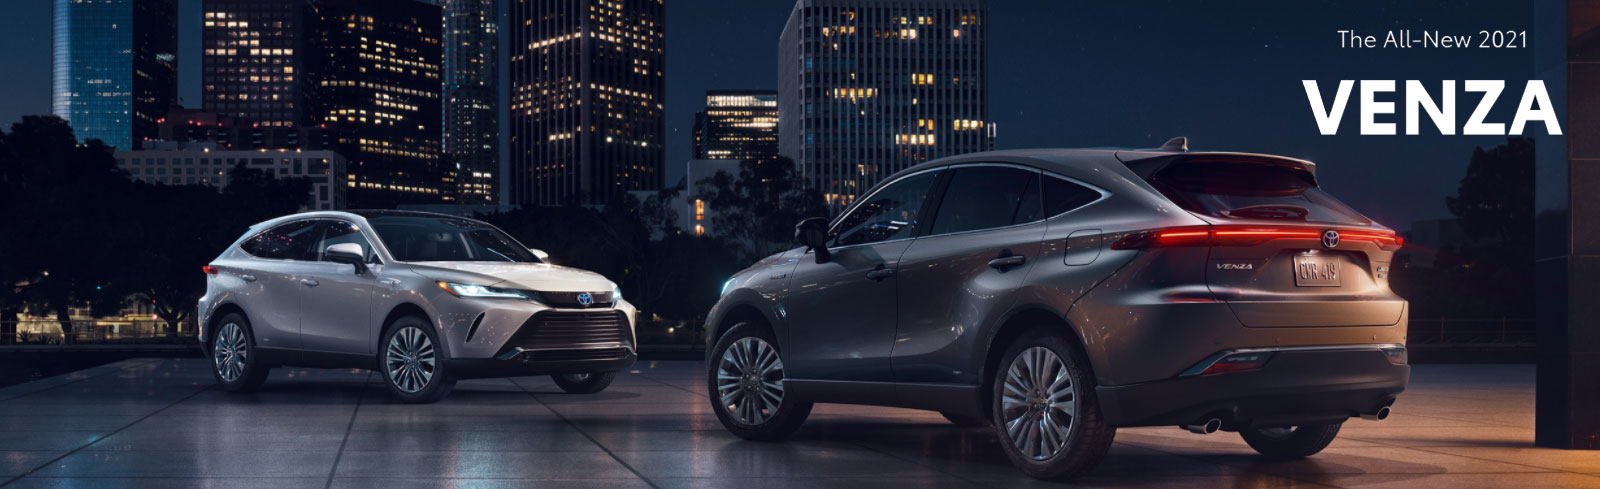 New 2021 Venza On New Orleans Road